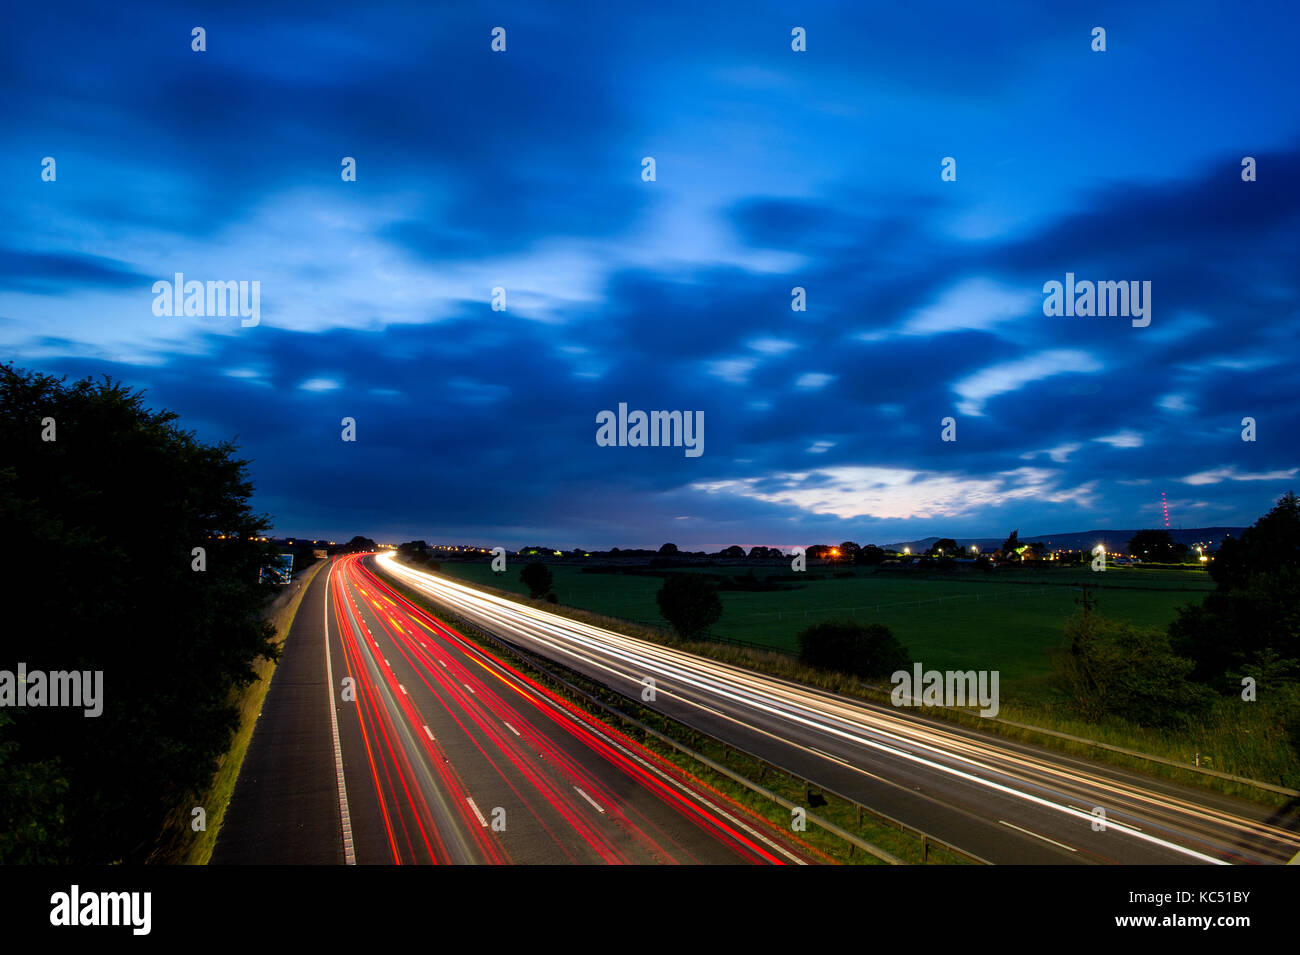 Light trails on the M61 motorway, Westhoughton, Bolton. Picture by Paul Heyes, Tuesday July 25, 2017. - Stock Image